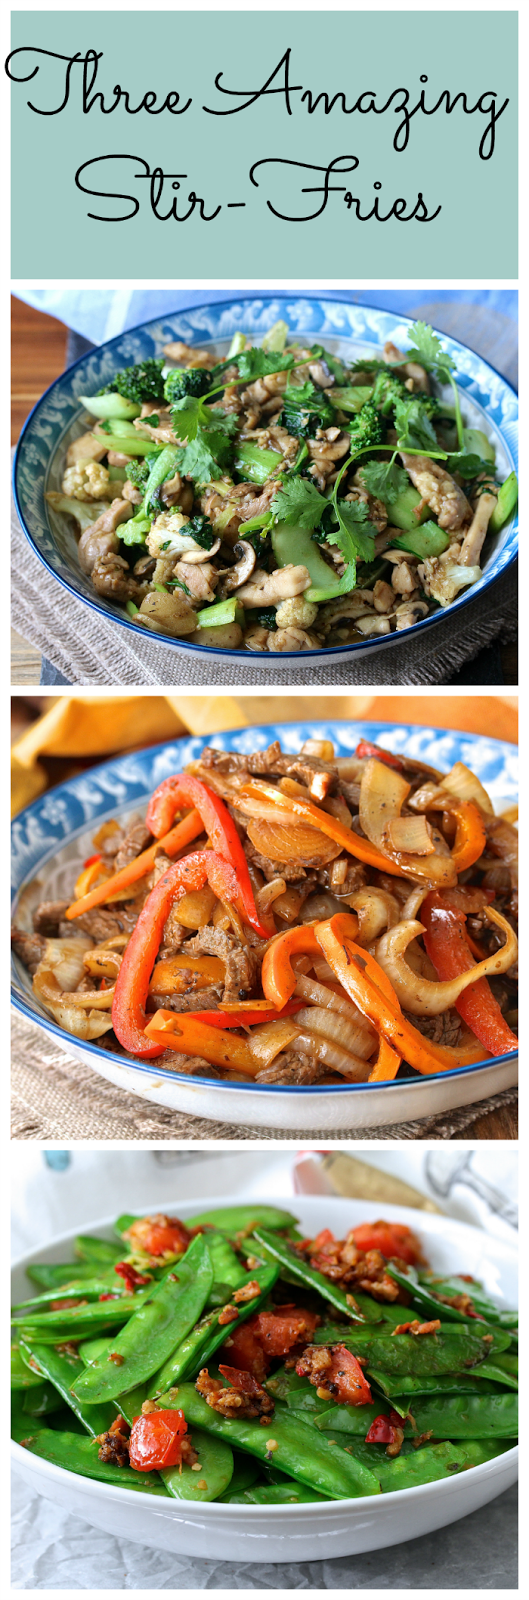 Wok Wednesdays. Three amazing stir fries.